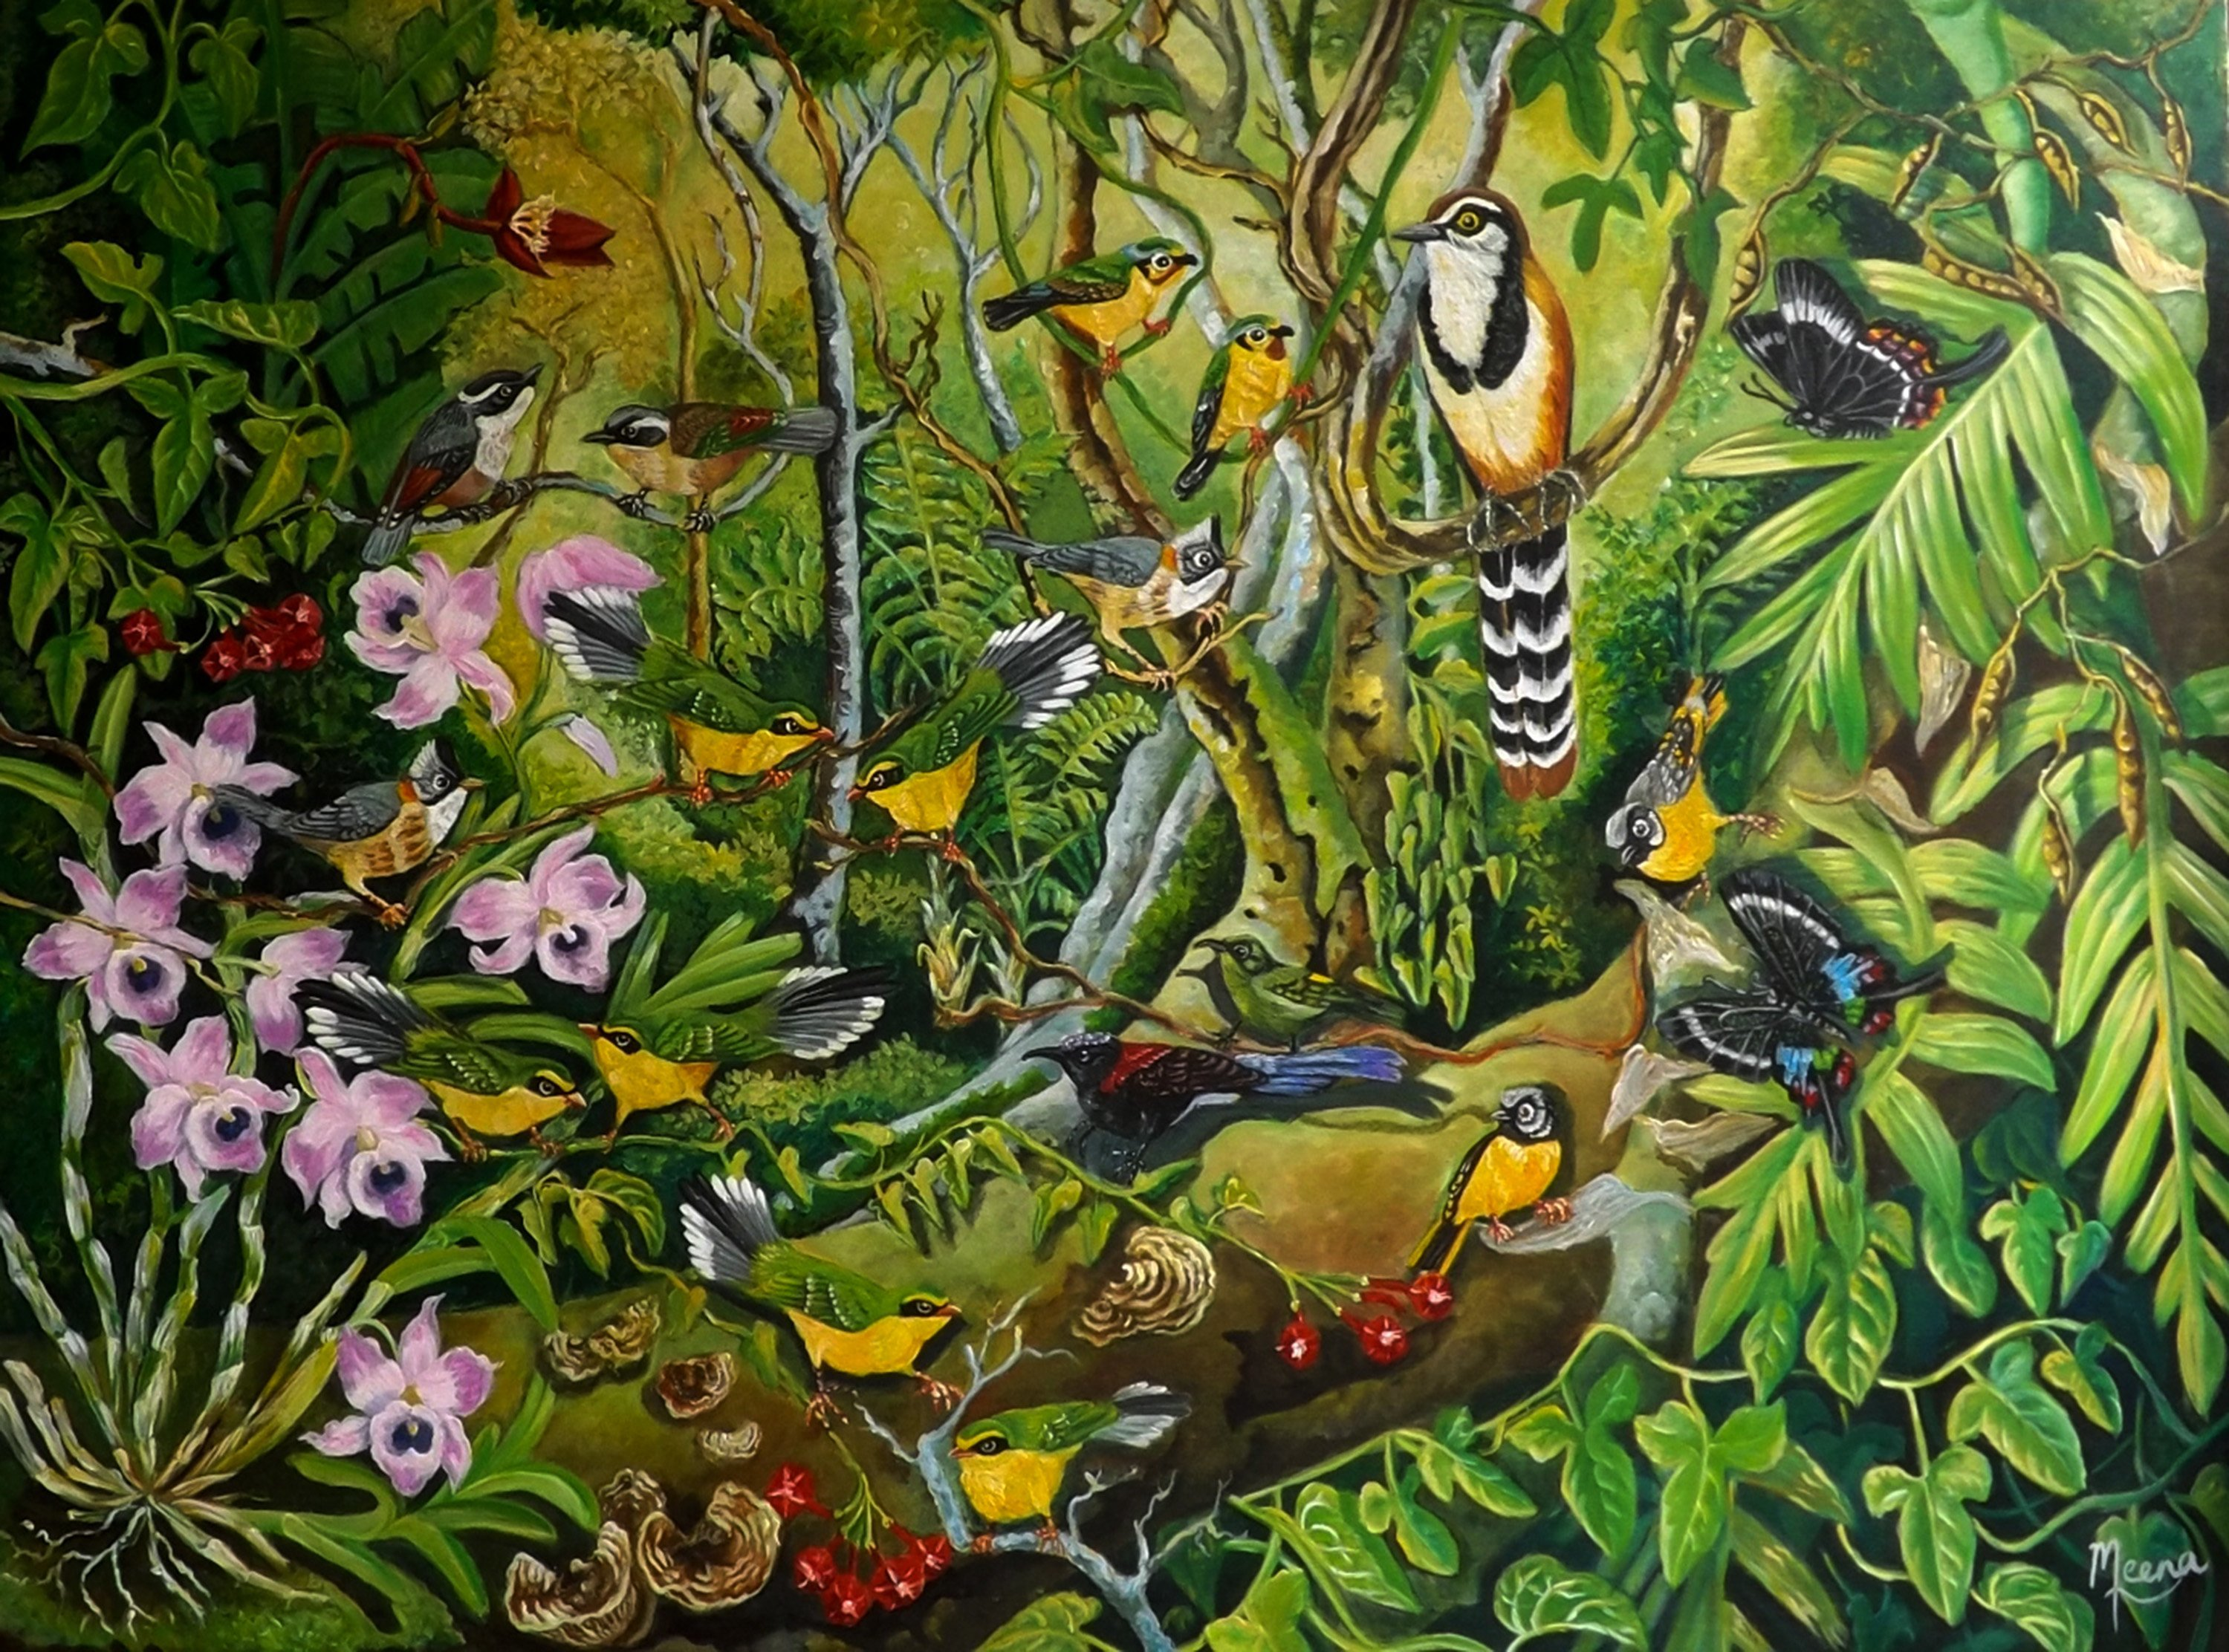 Meenakshi Subramaniam; Paradise, 2017, Original Painting Acrylic, 48 x 36 inches. Artwork description: 241 north east Himalaya , thrush , orchids ...